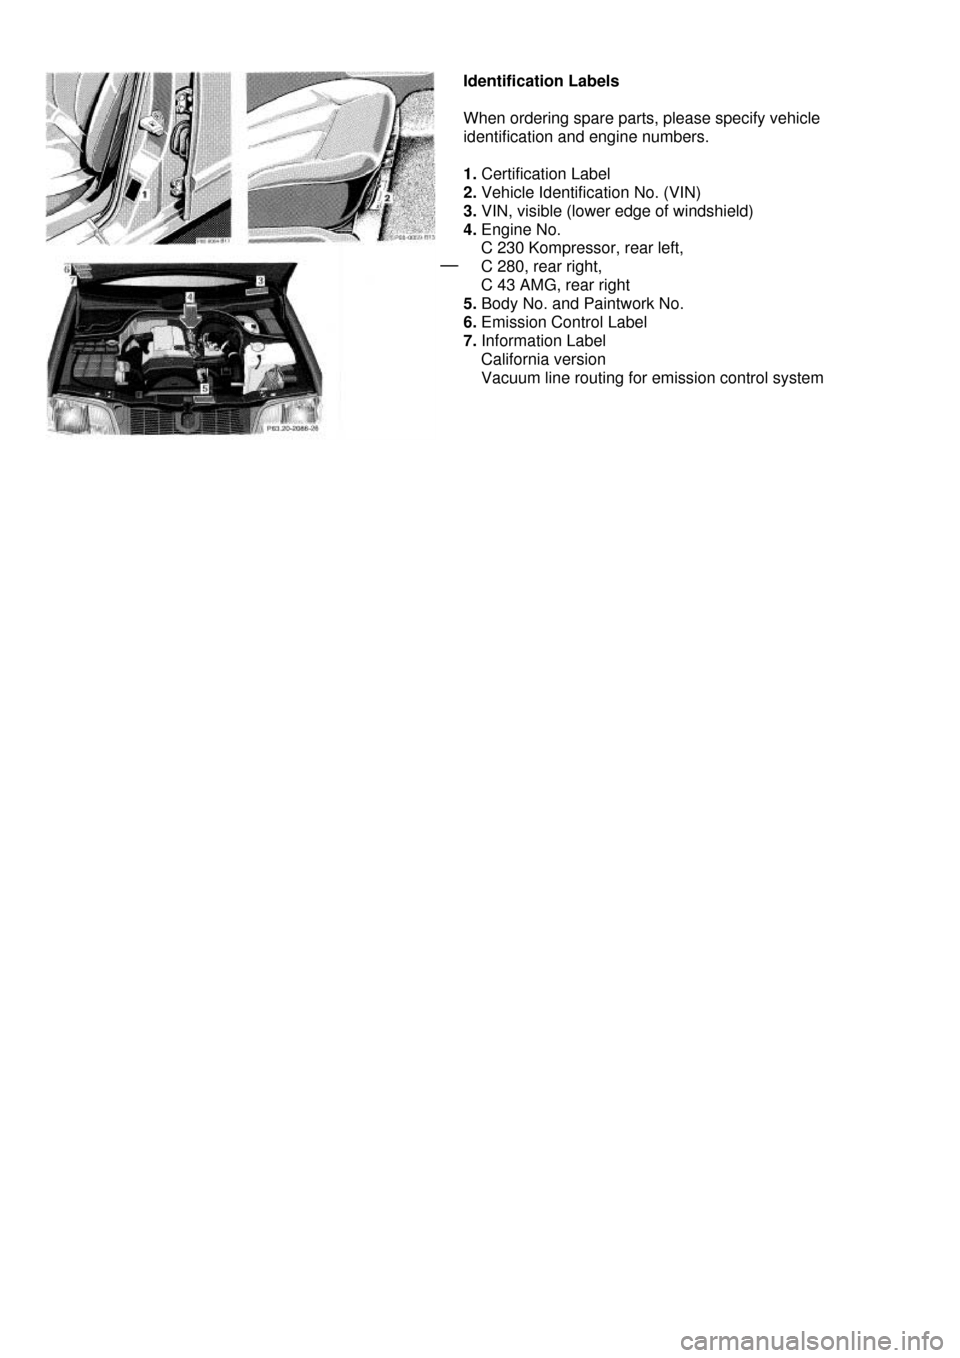 MERCEDES-BENZ C-Class 2000 W202 Owner's Manual